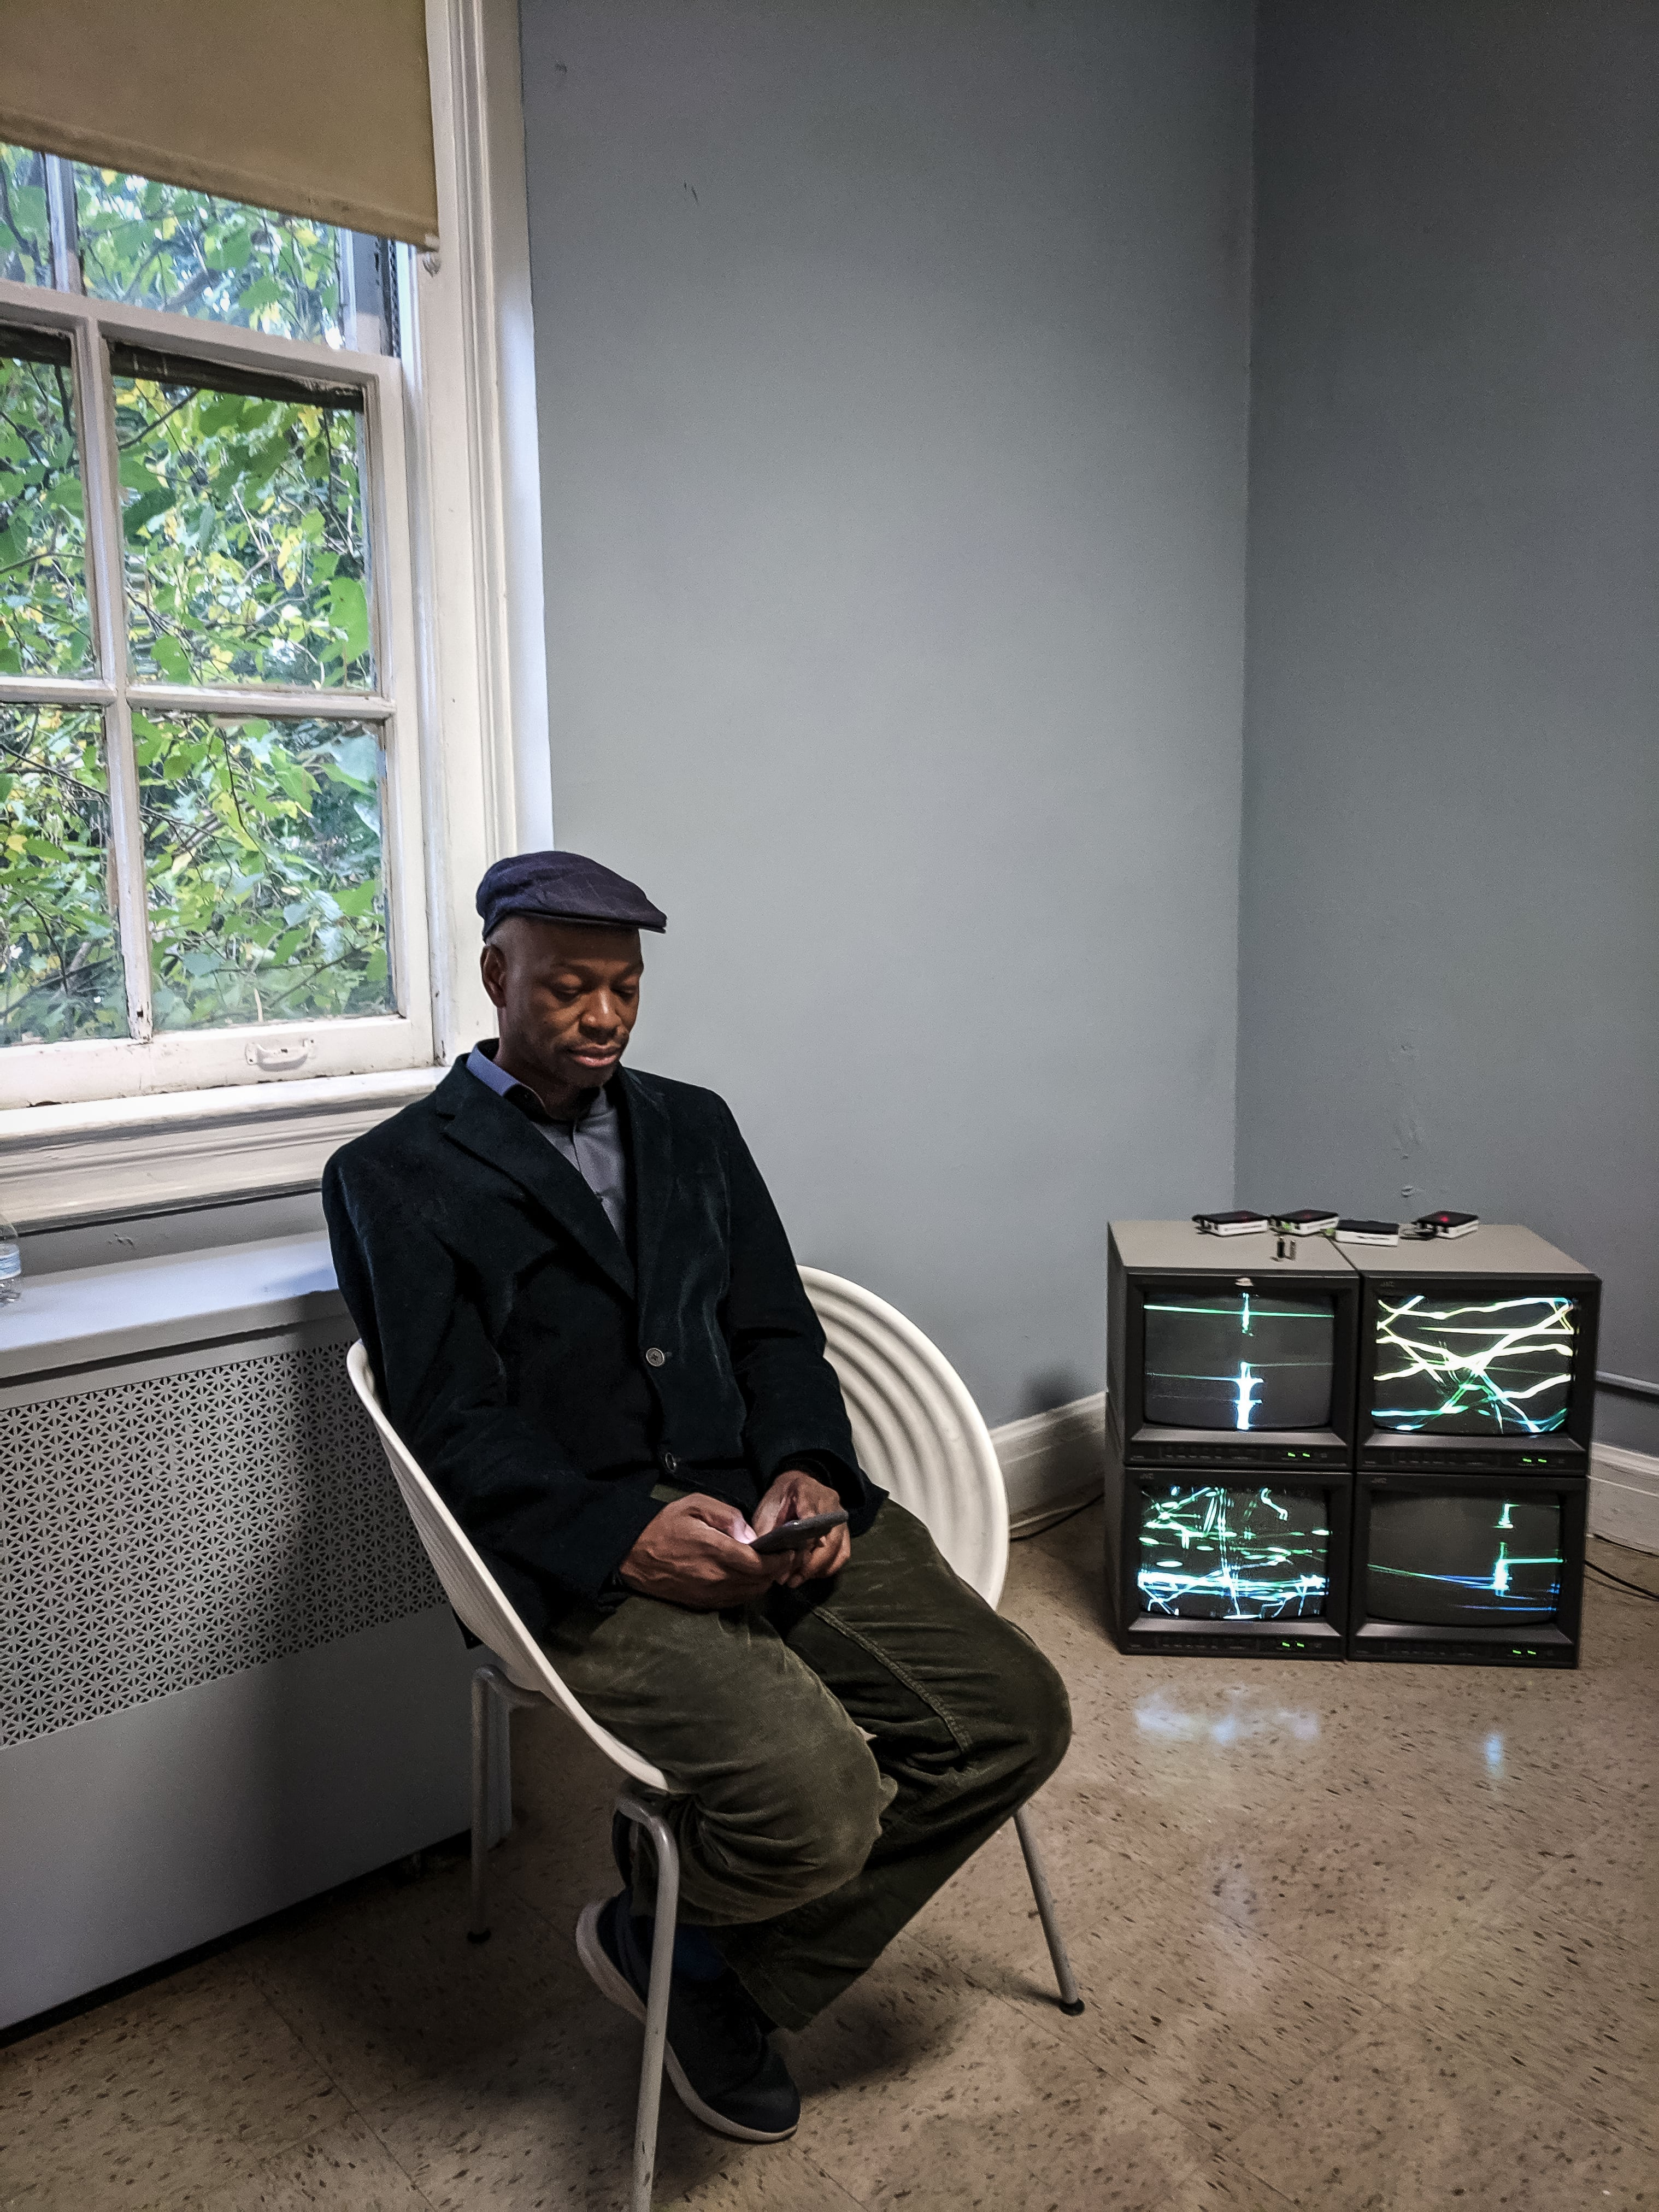 Walter E. Puryear sits in a chair, holding a phone in both hands, with a video sculpture on 4 CRT monitors showing abstract green, calligraphic lines.